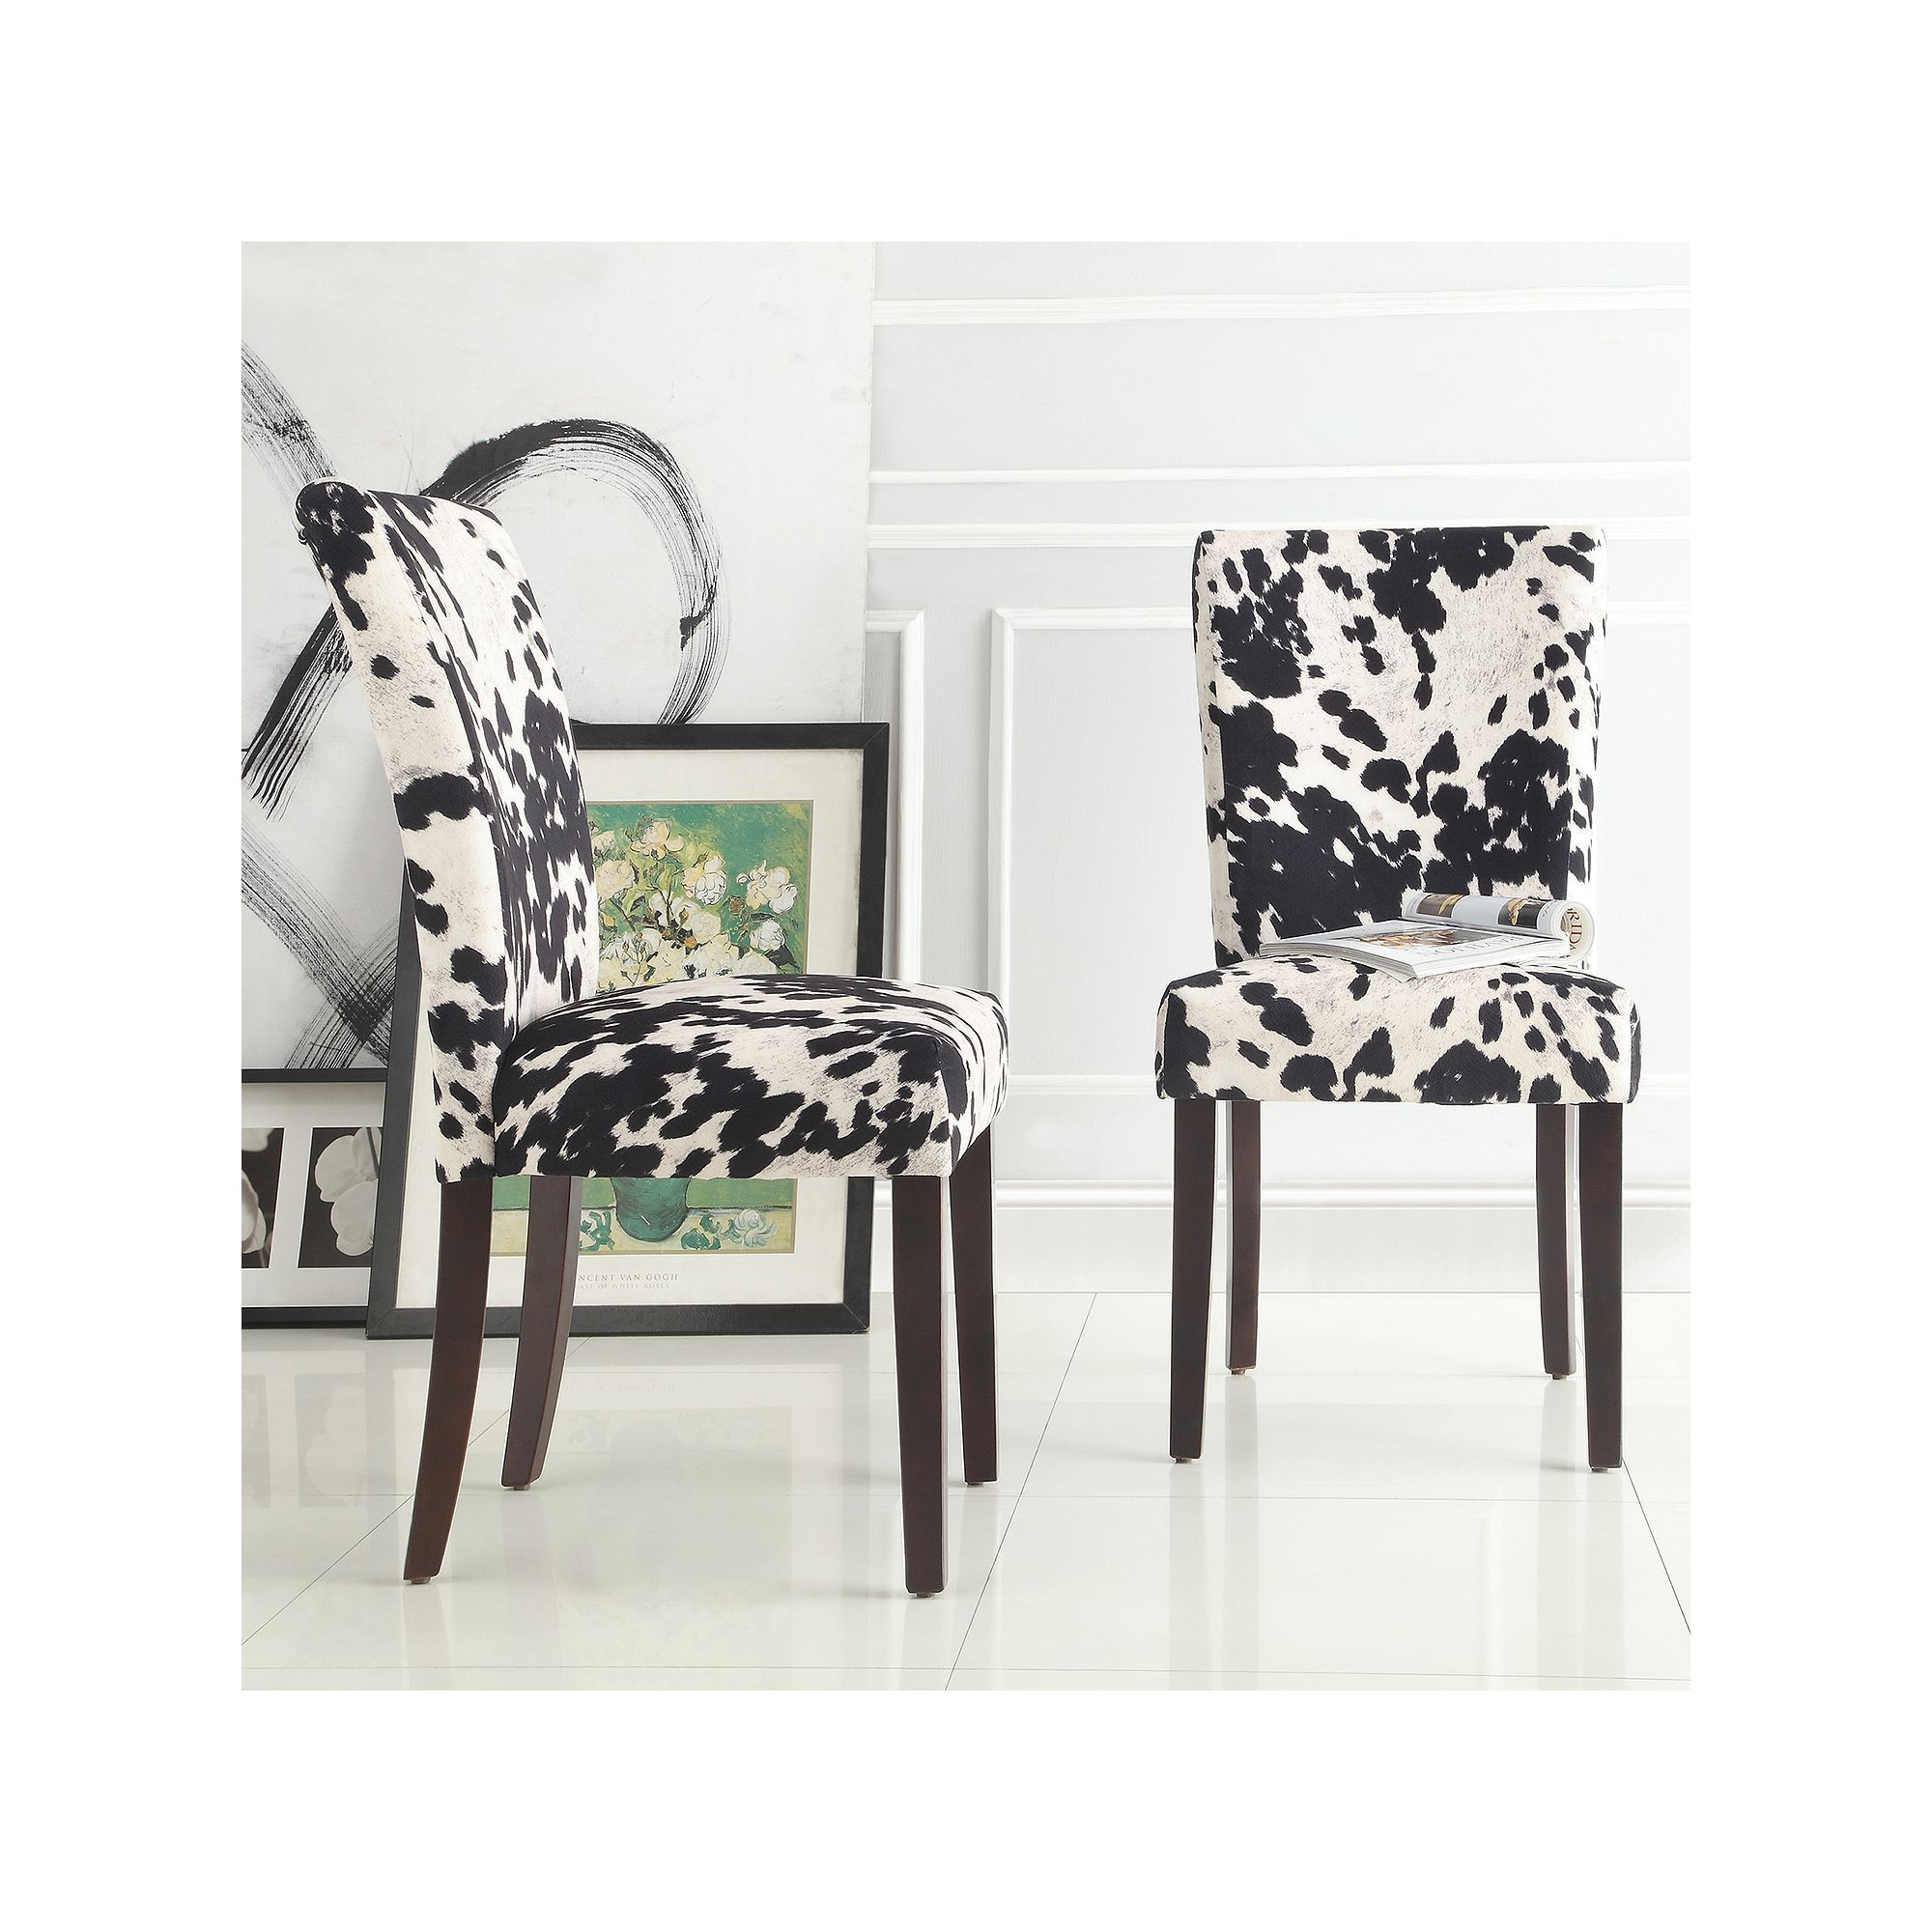 Homevance Denargo Printed Side Chair 2 Piece Set Black